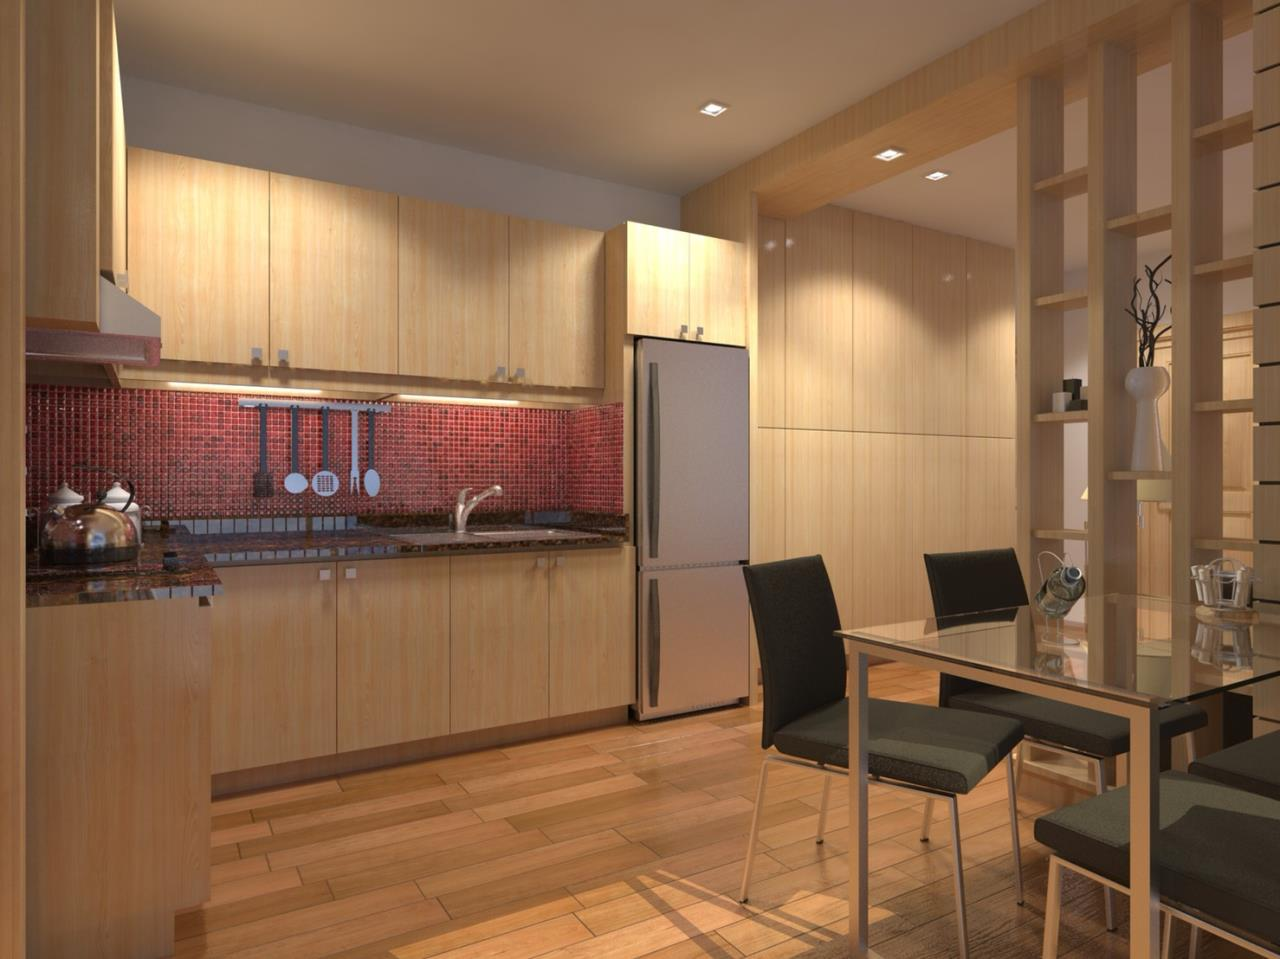 Signature Realty ( Thailand ) Co Ltd Agency's Furnished 1bedroom 46 sq.m condo with jacuzzi floor 2-10 at The Grand Jomtein Beach Pattaya 24